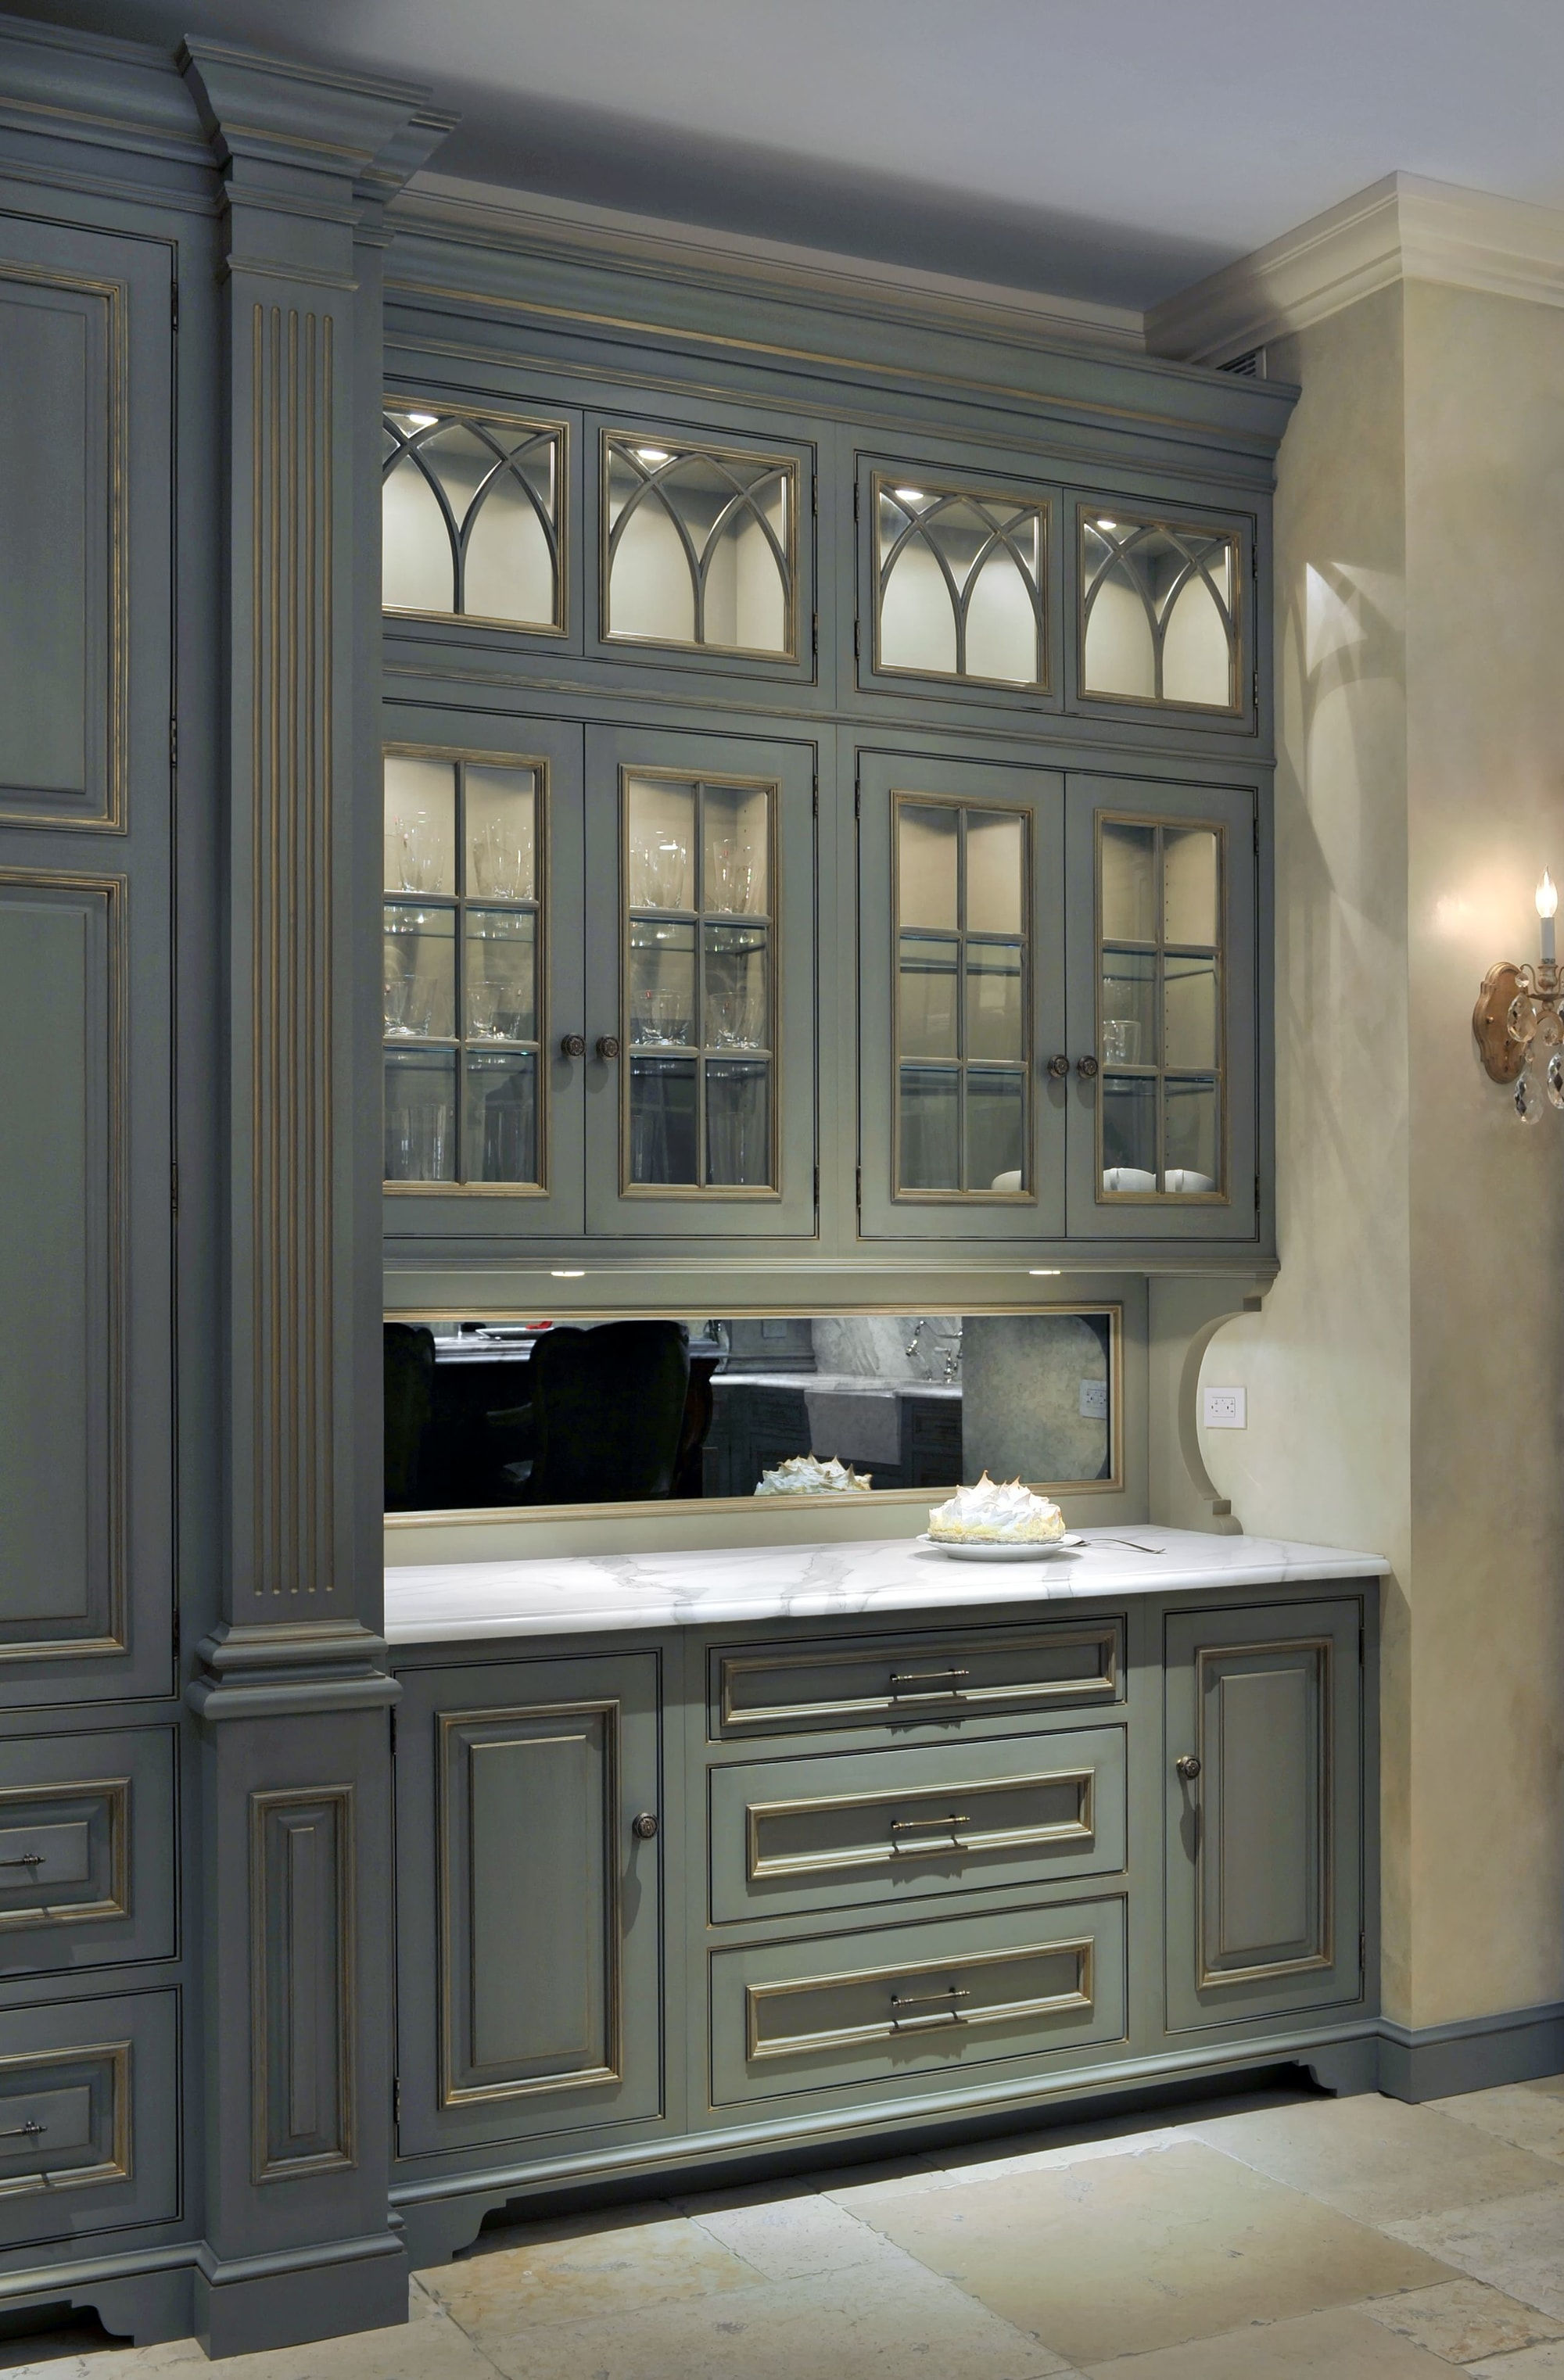 Traditional style kitchen with classic gray kitchen cabinet